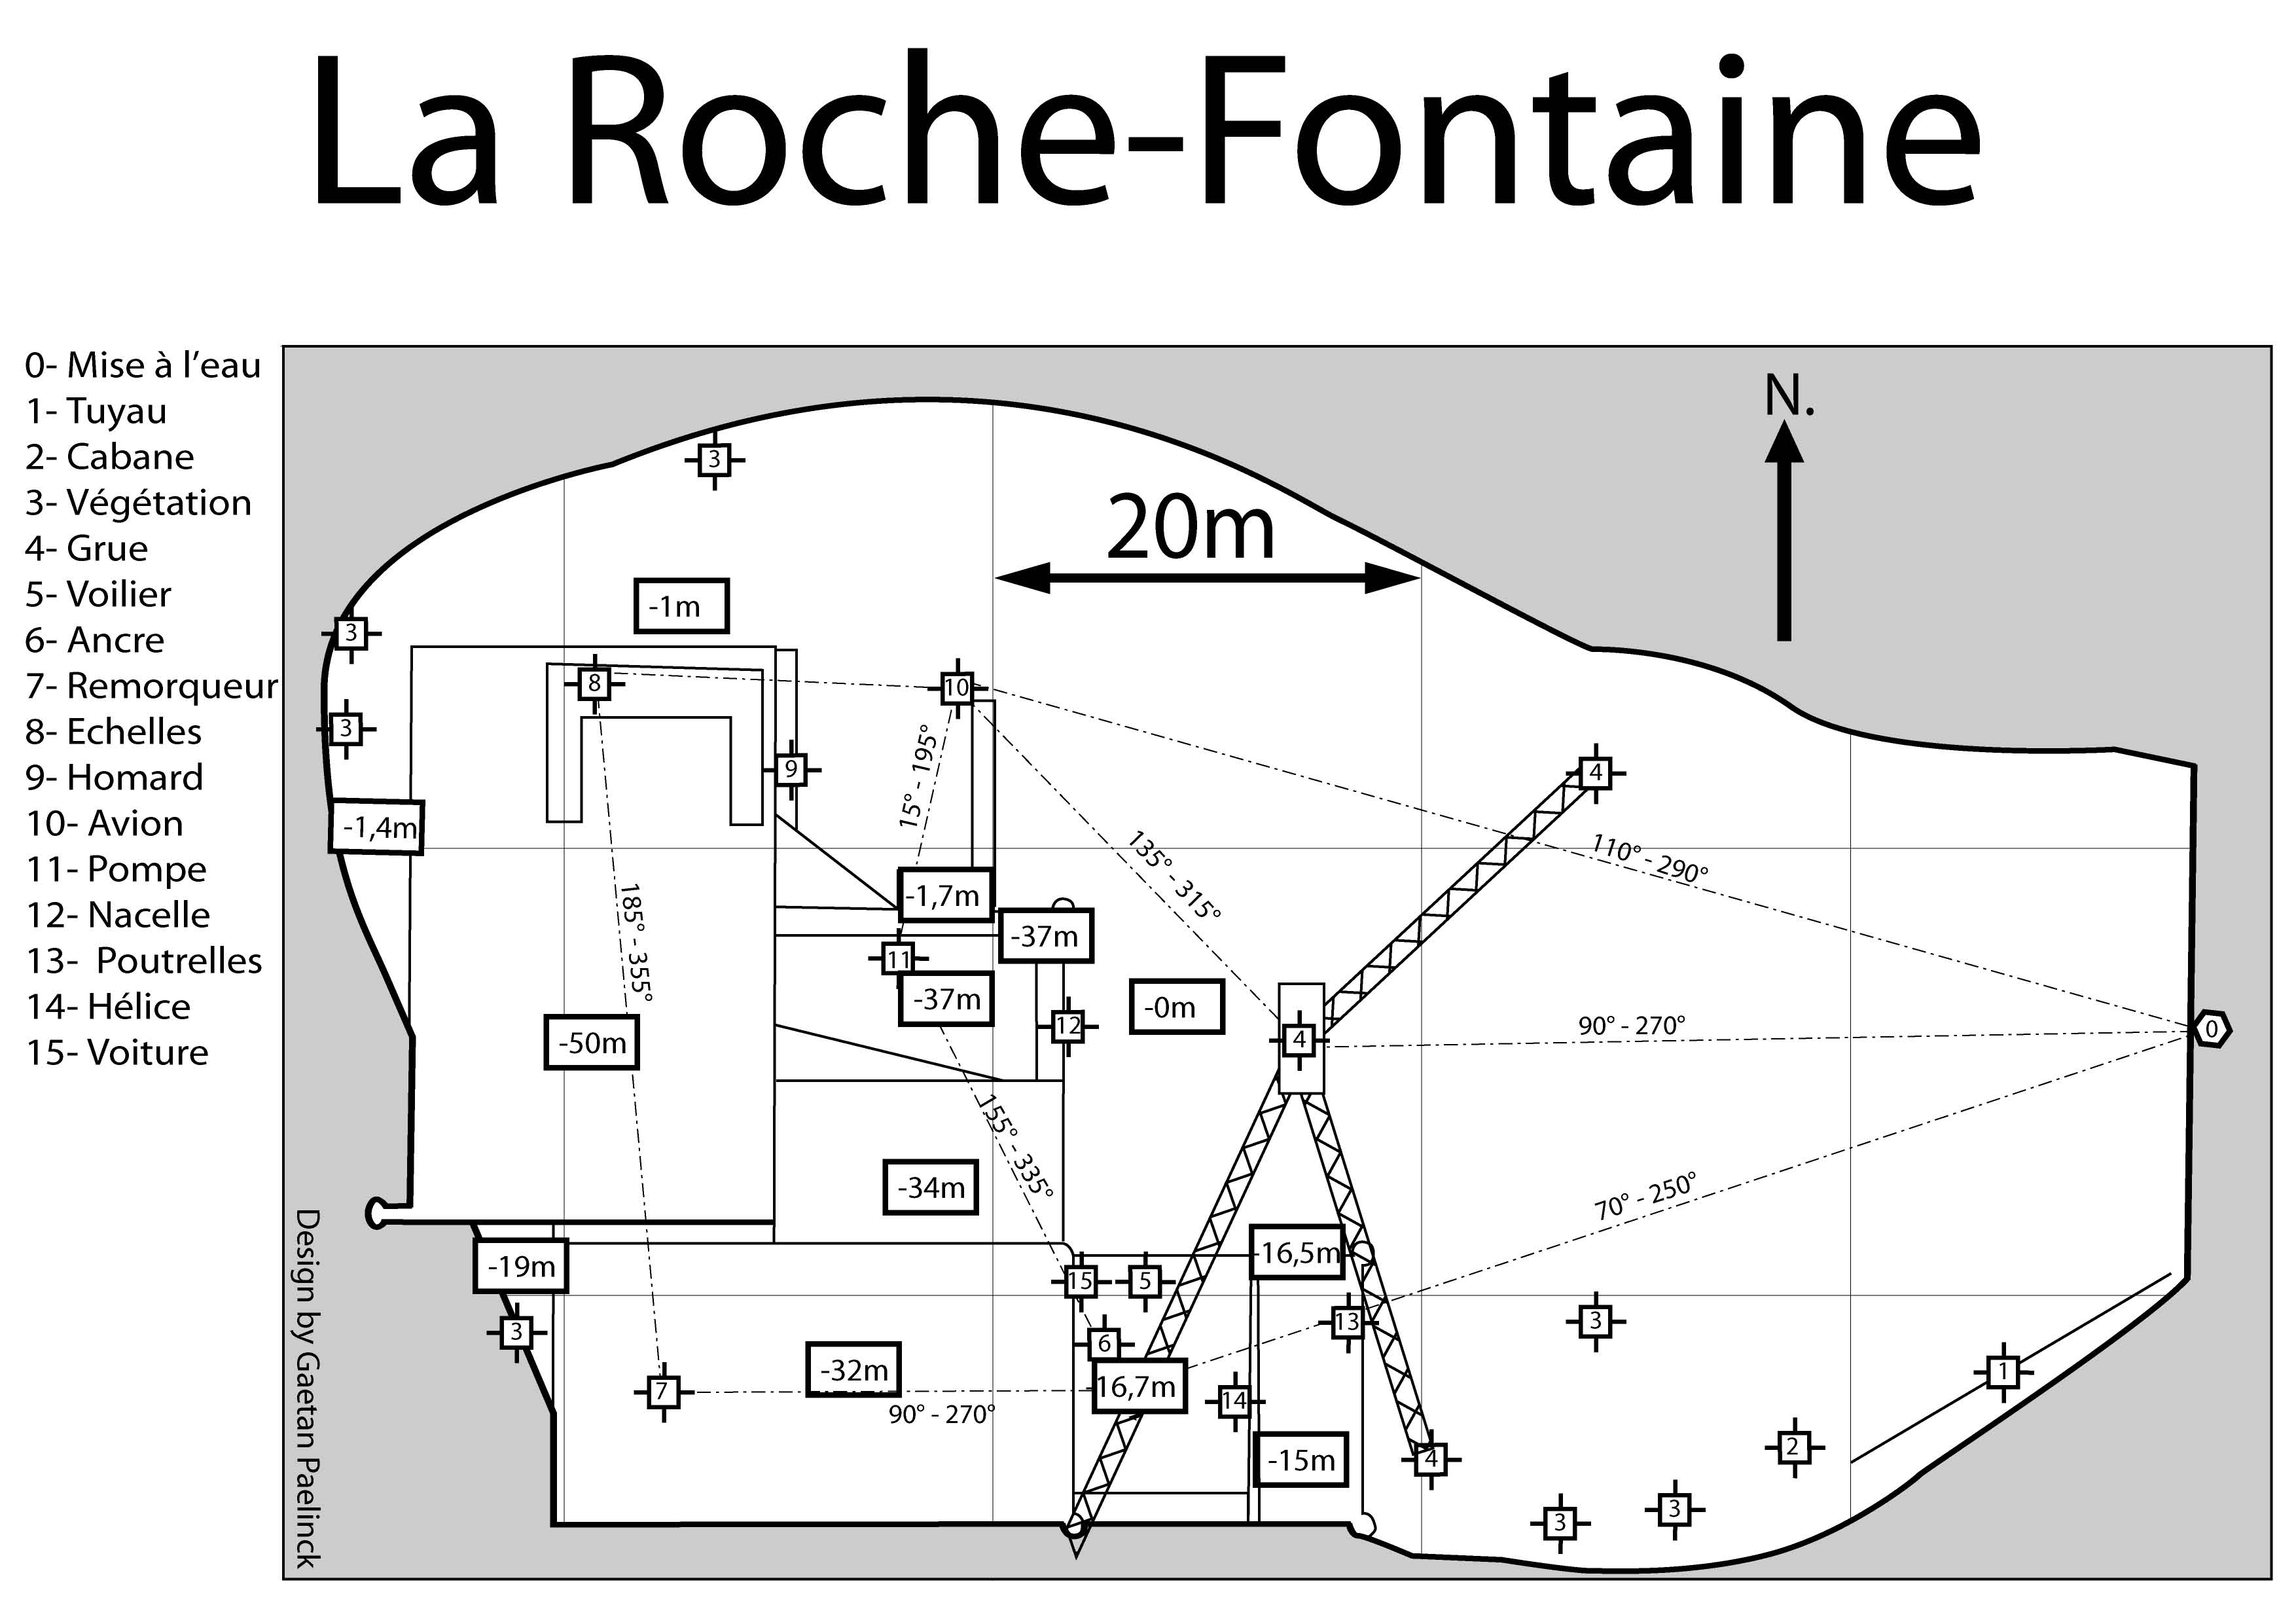 Plan Carriere RocheFontaine